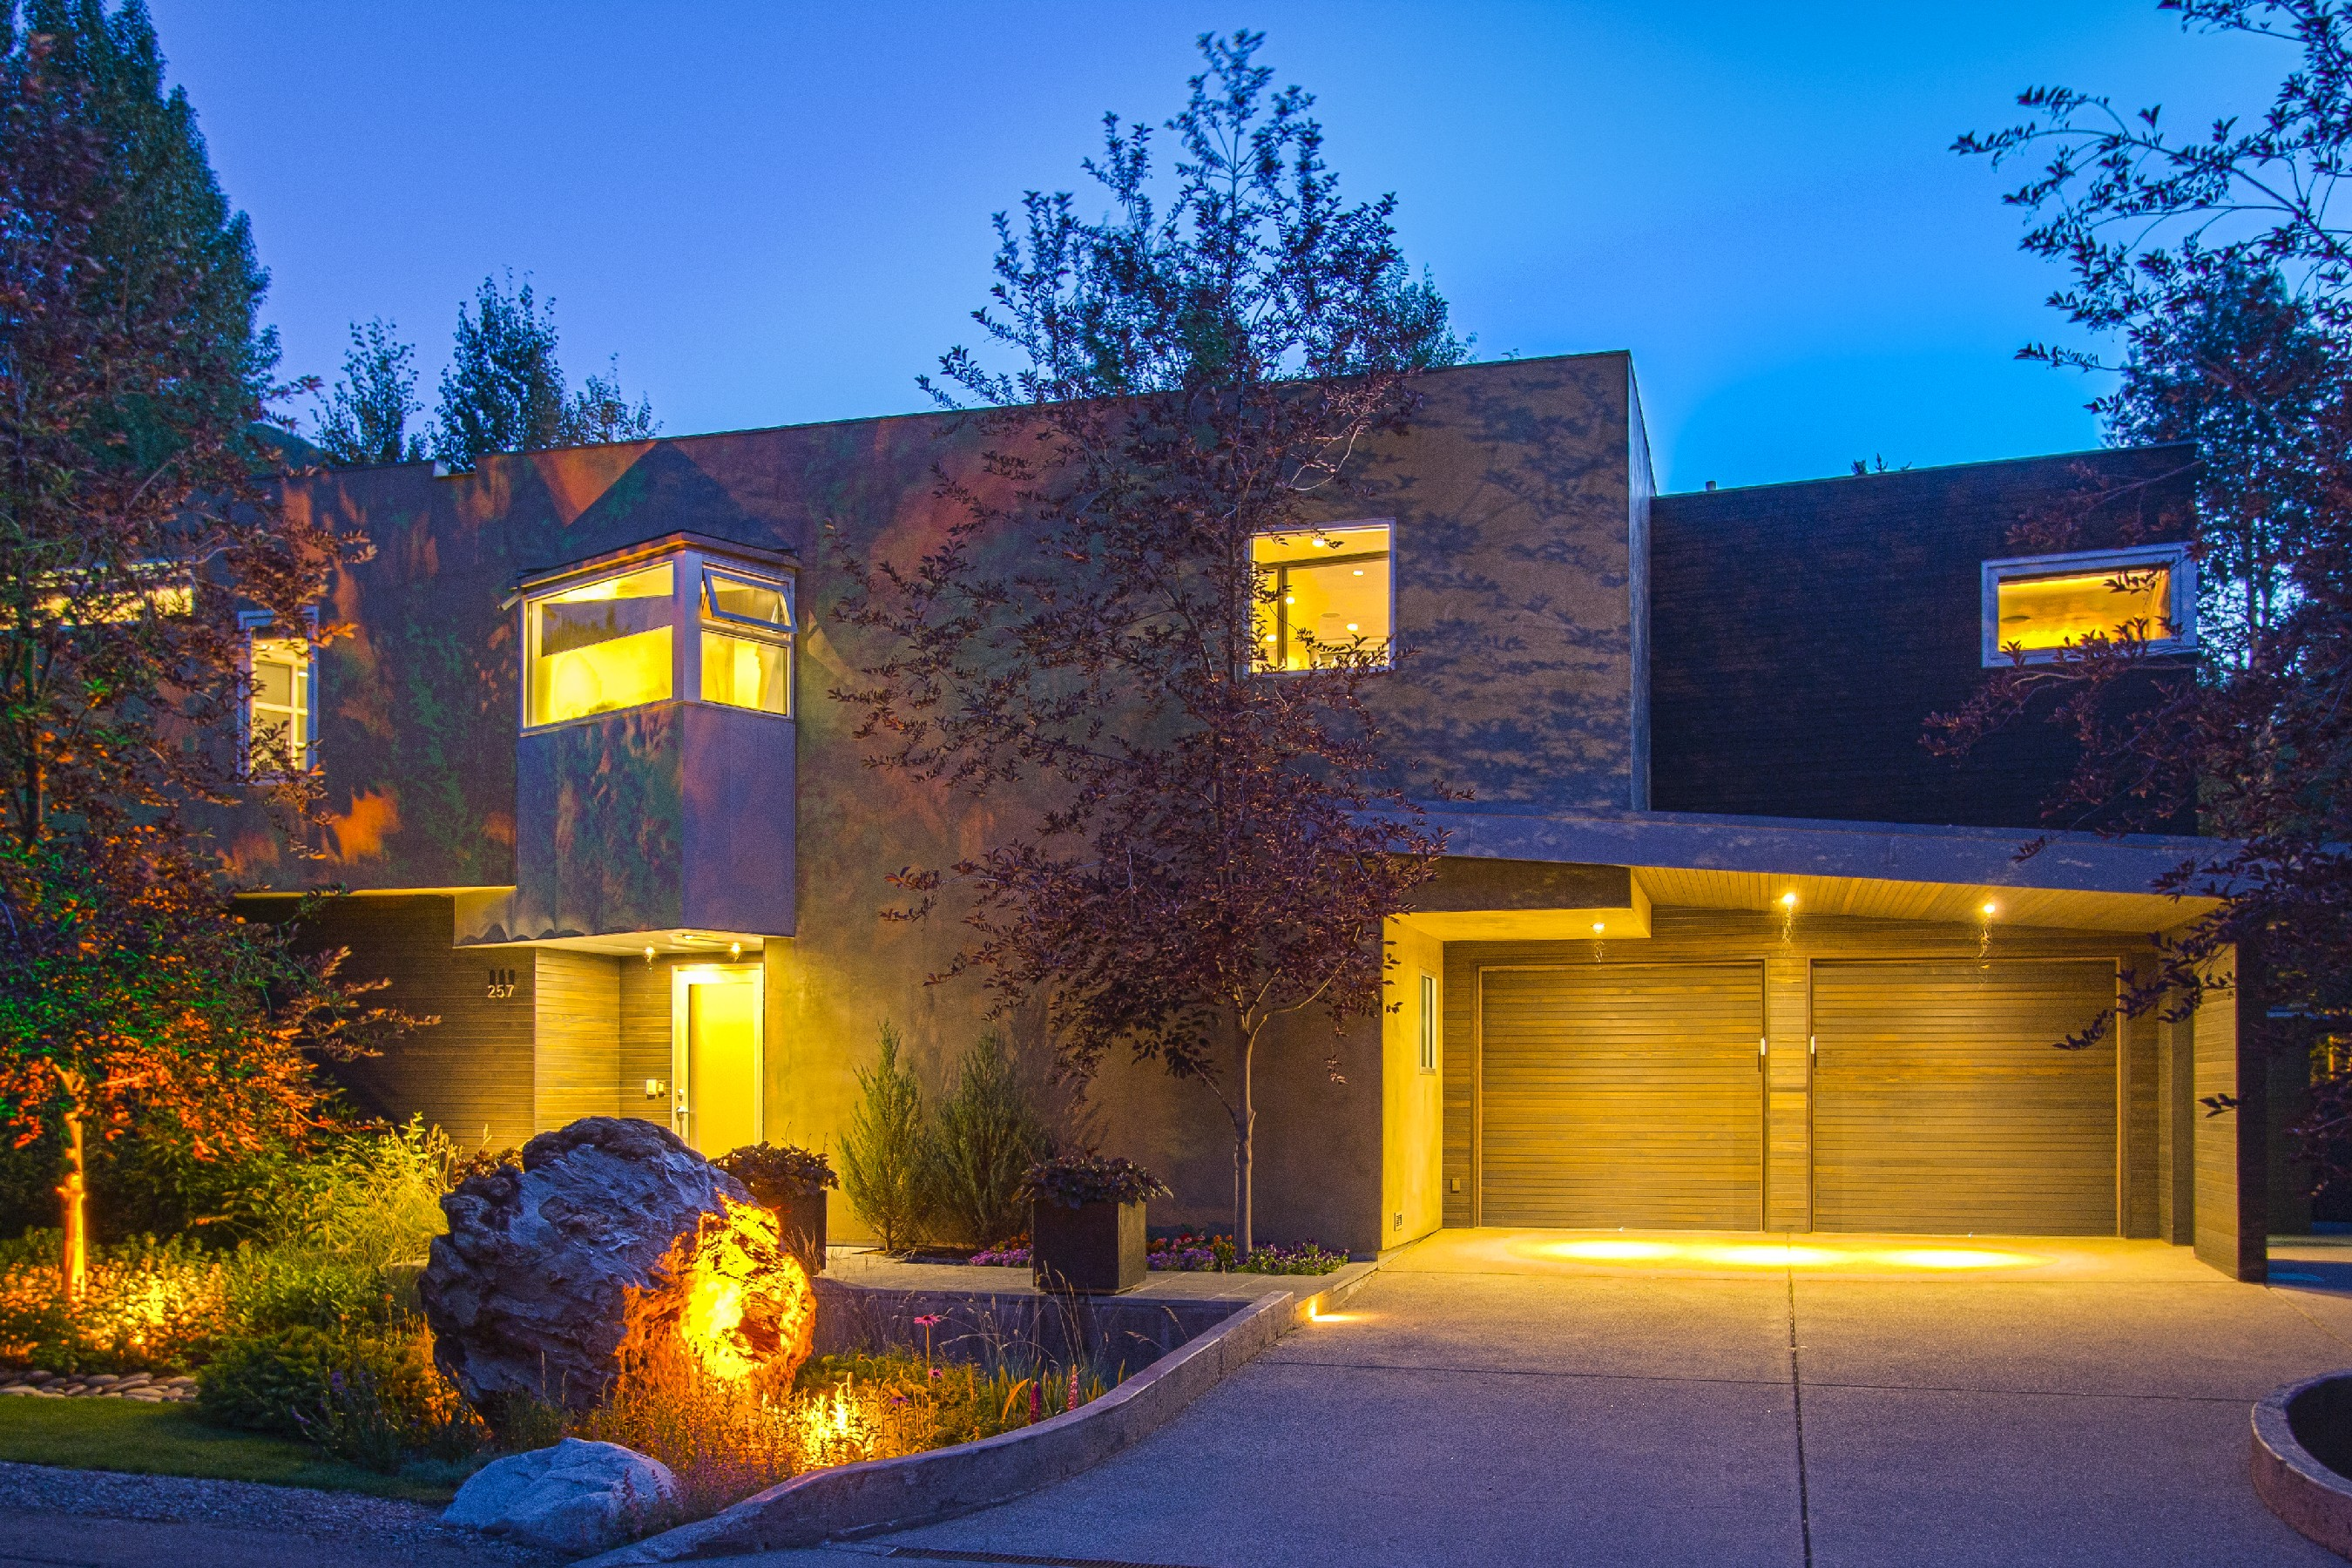 Single Family Home for Sale at Spectacular Downtown Aspen Contemporary Home 257 Park Avenue Aspen, Colorado, 81611 United States